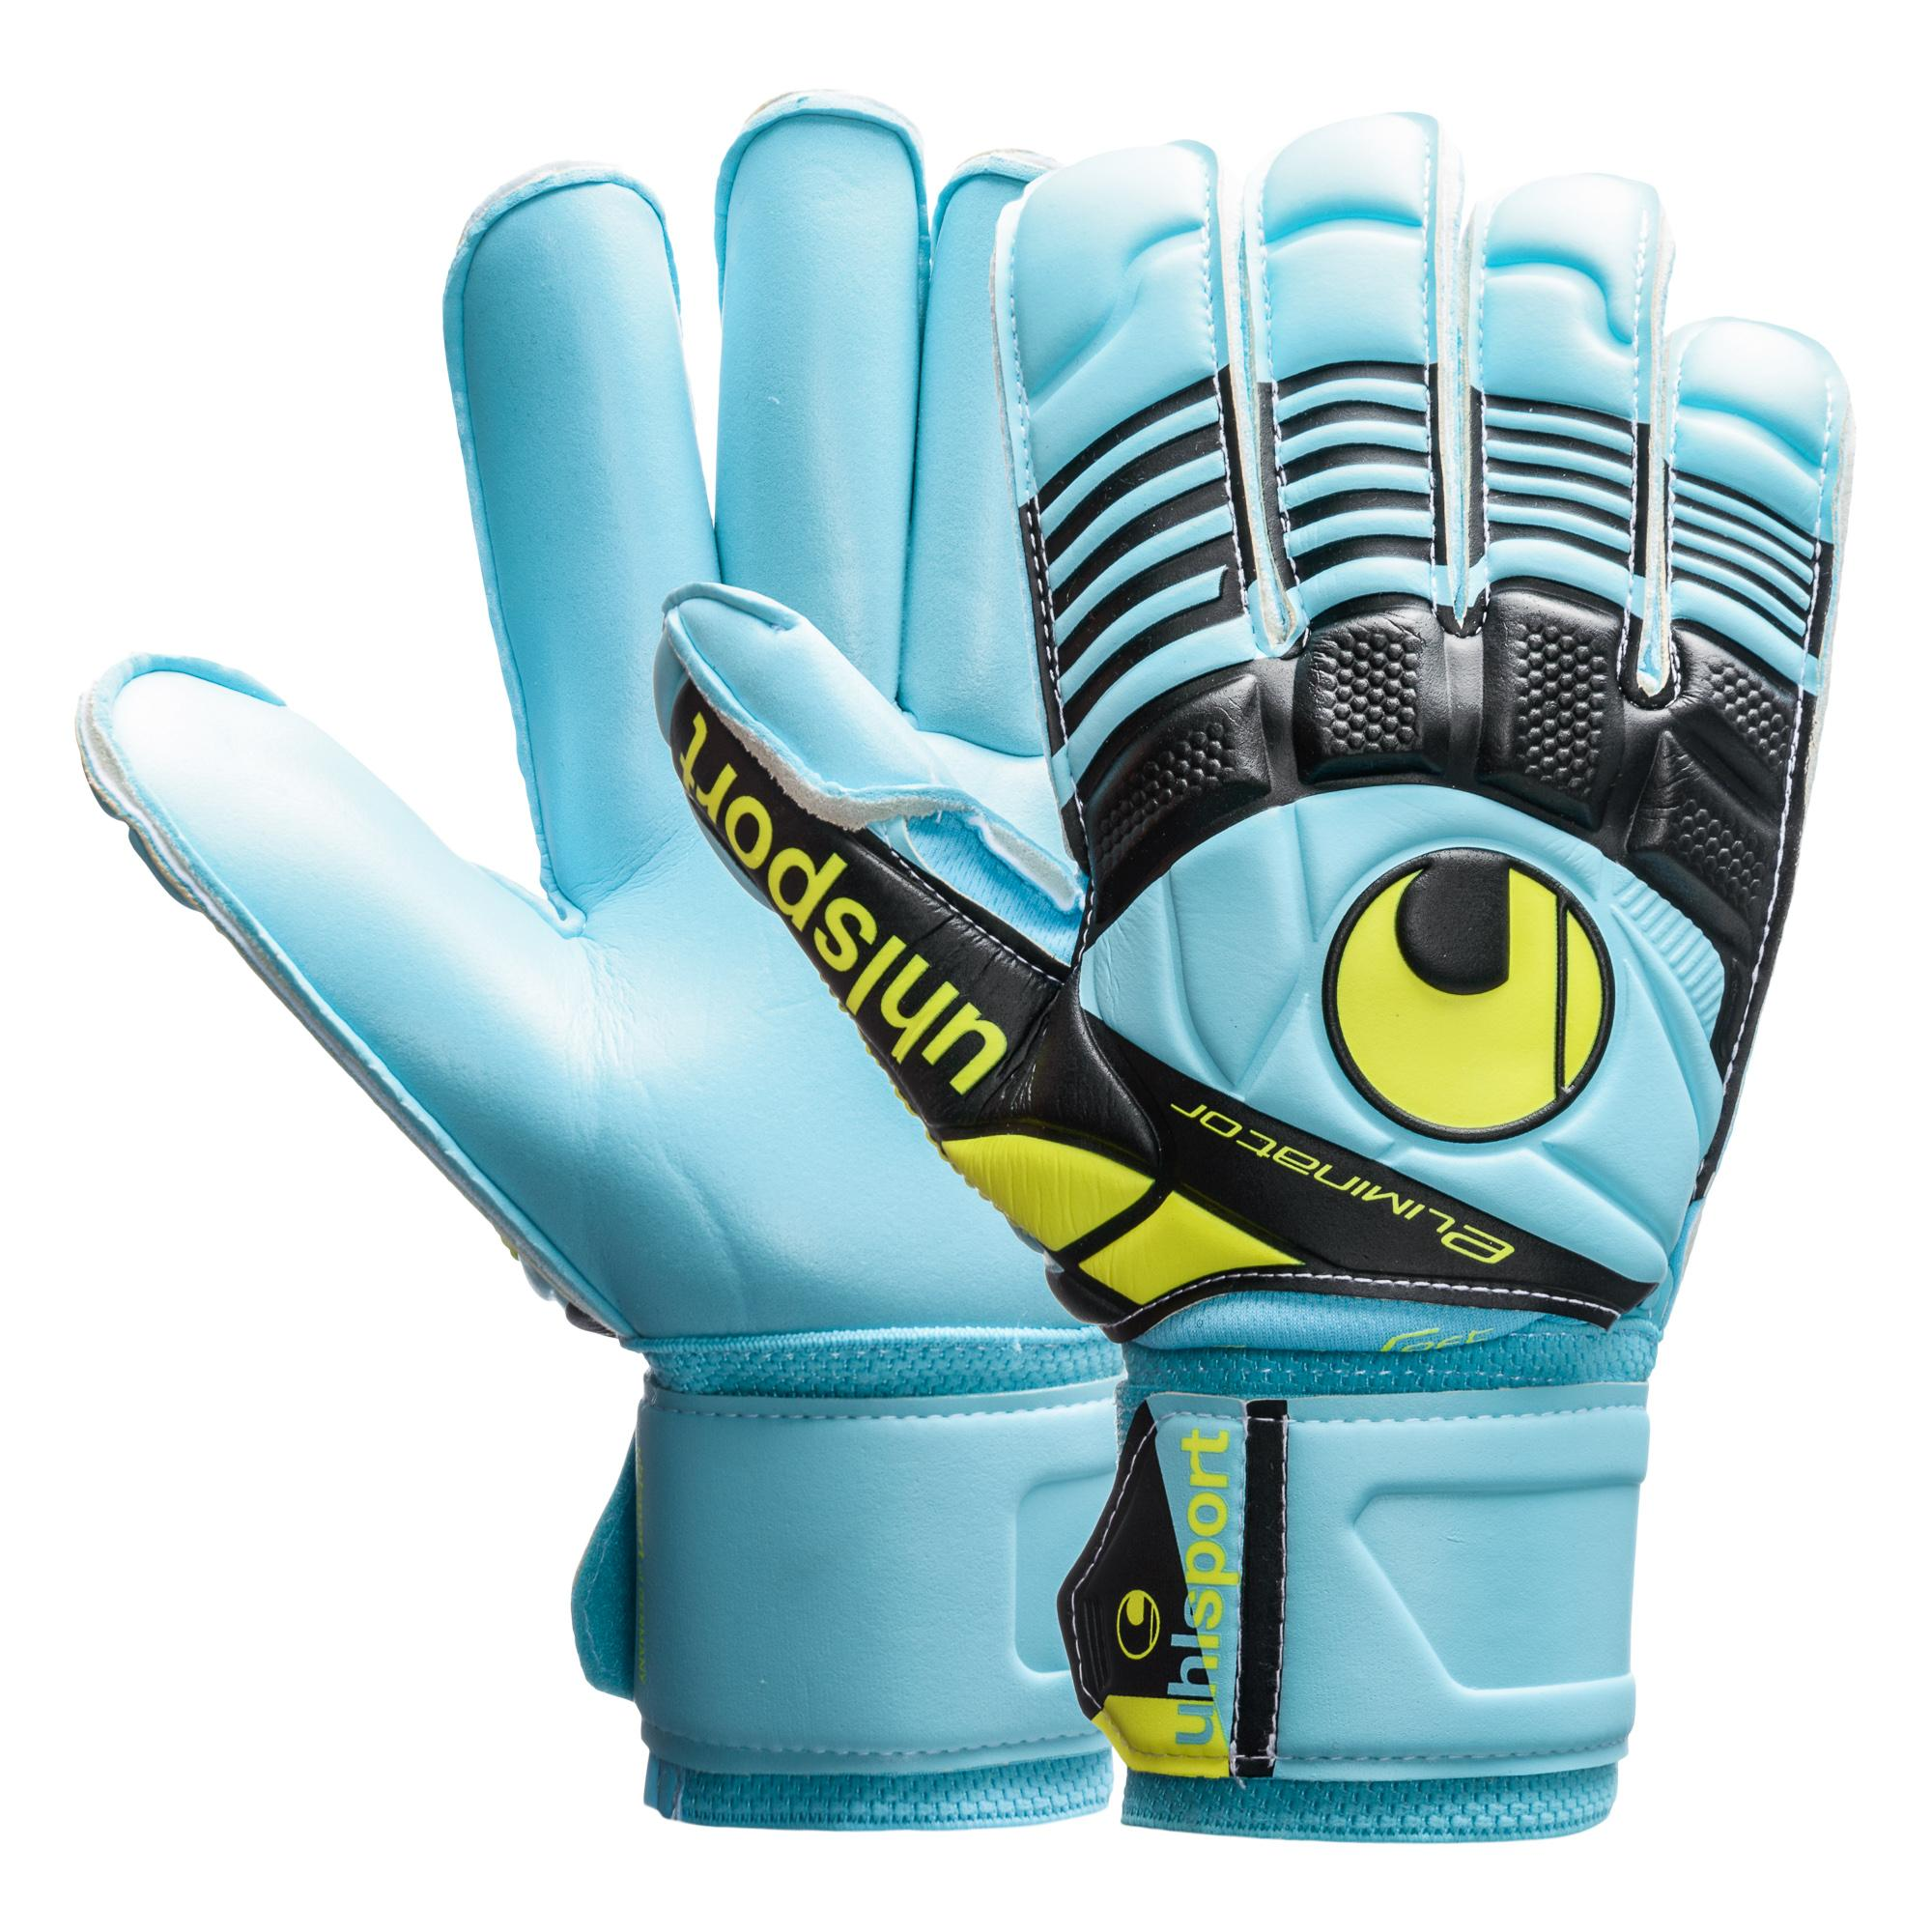 Uhlsport Målvaktshandske Eliminator Supersoft Rollfinger Turkos/Svart/Gul